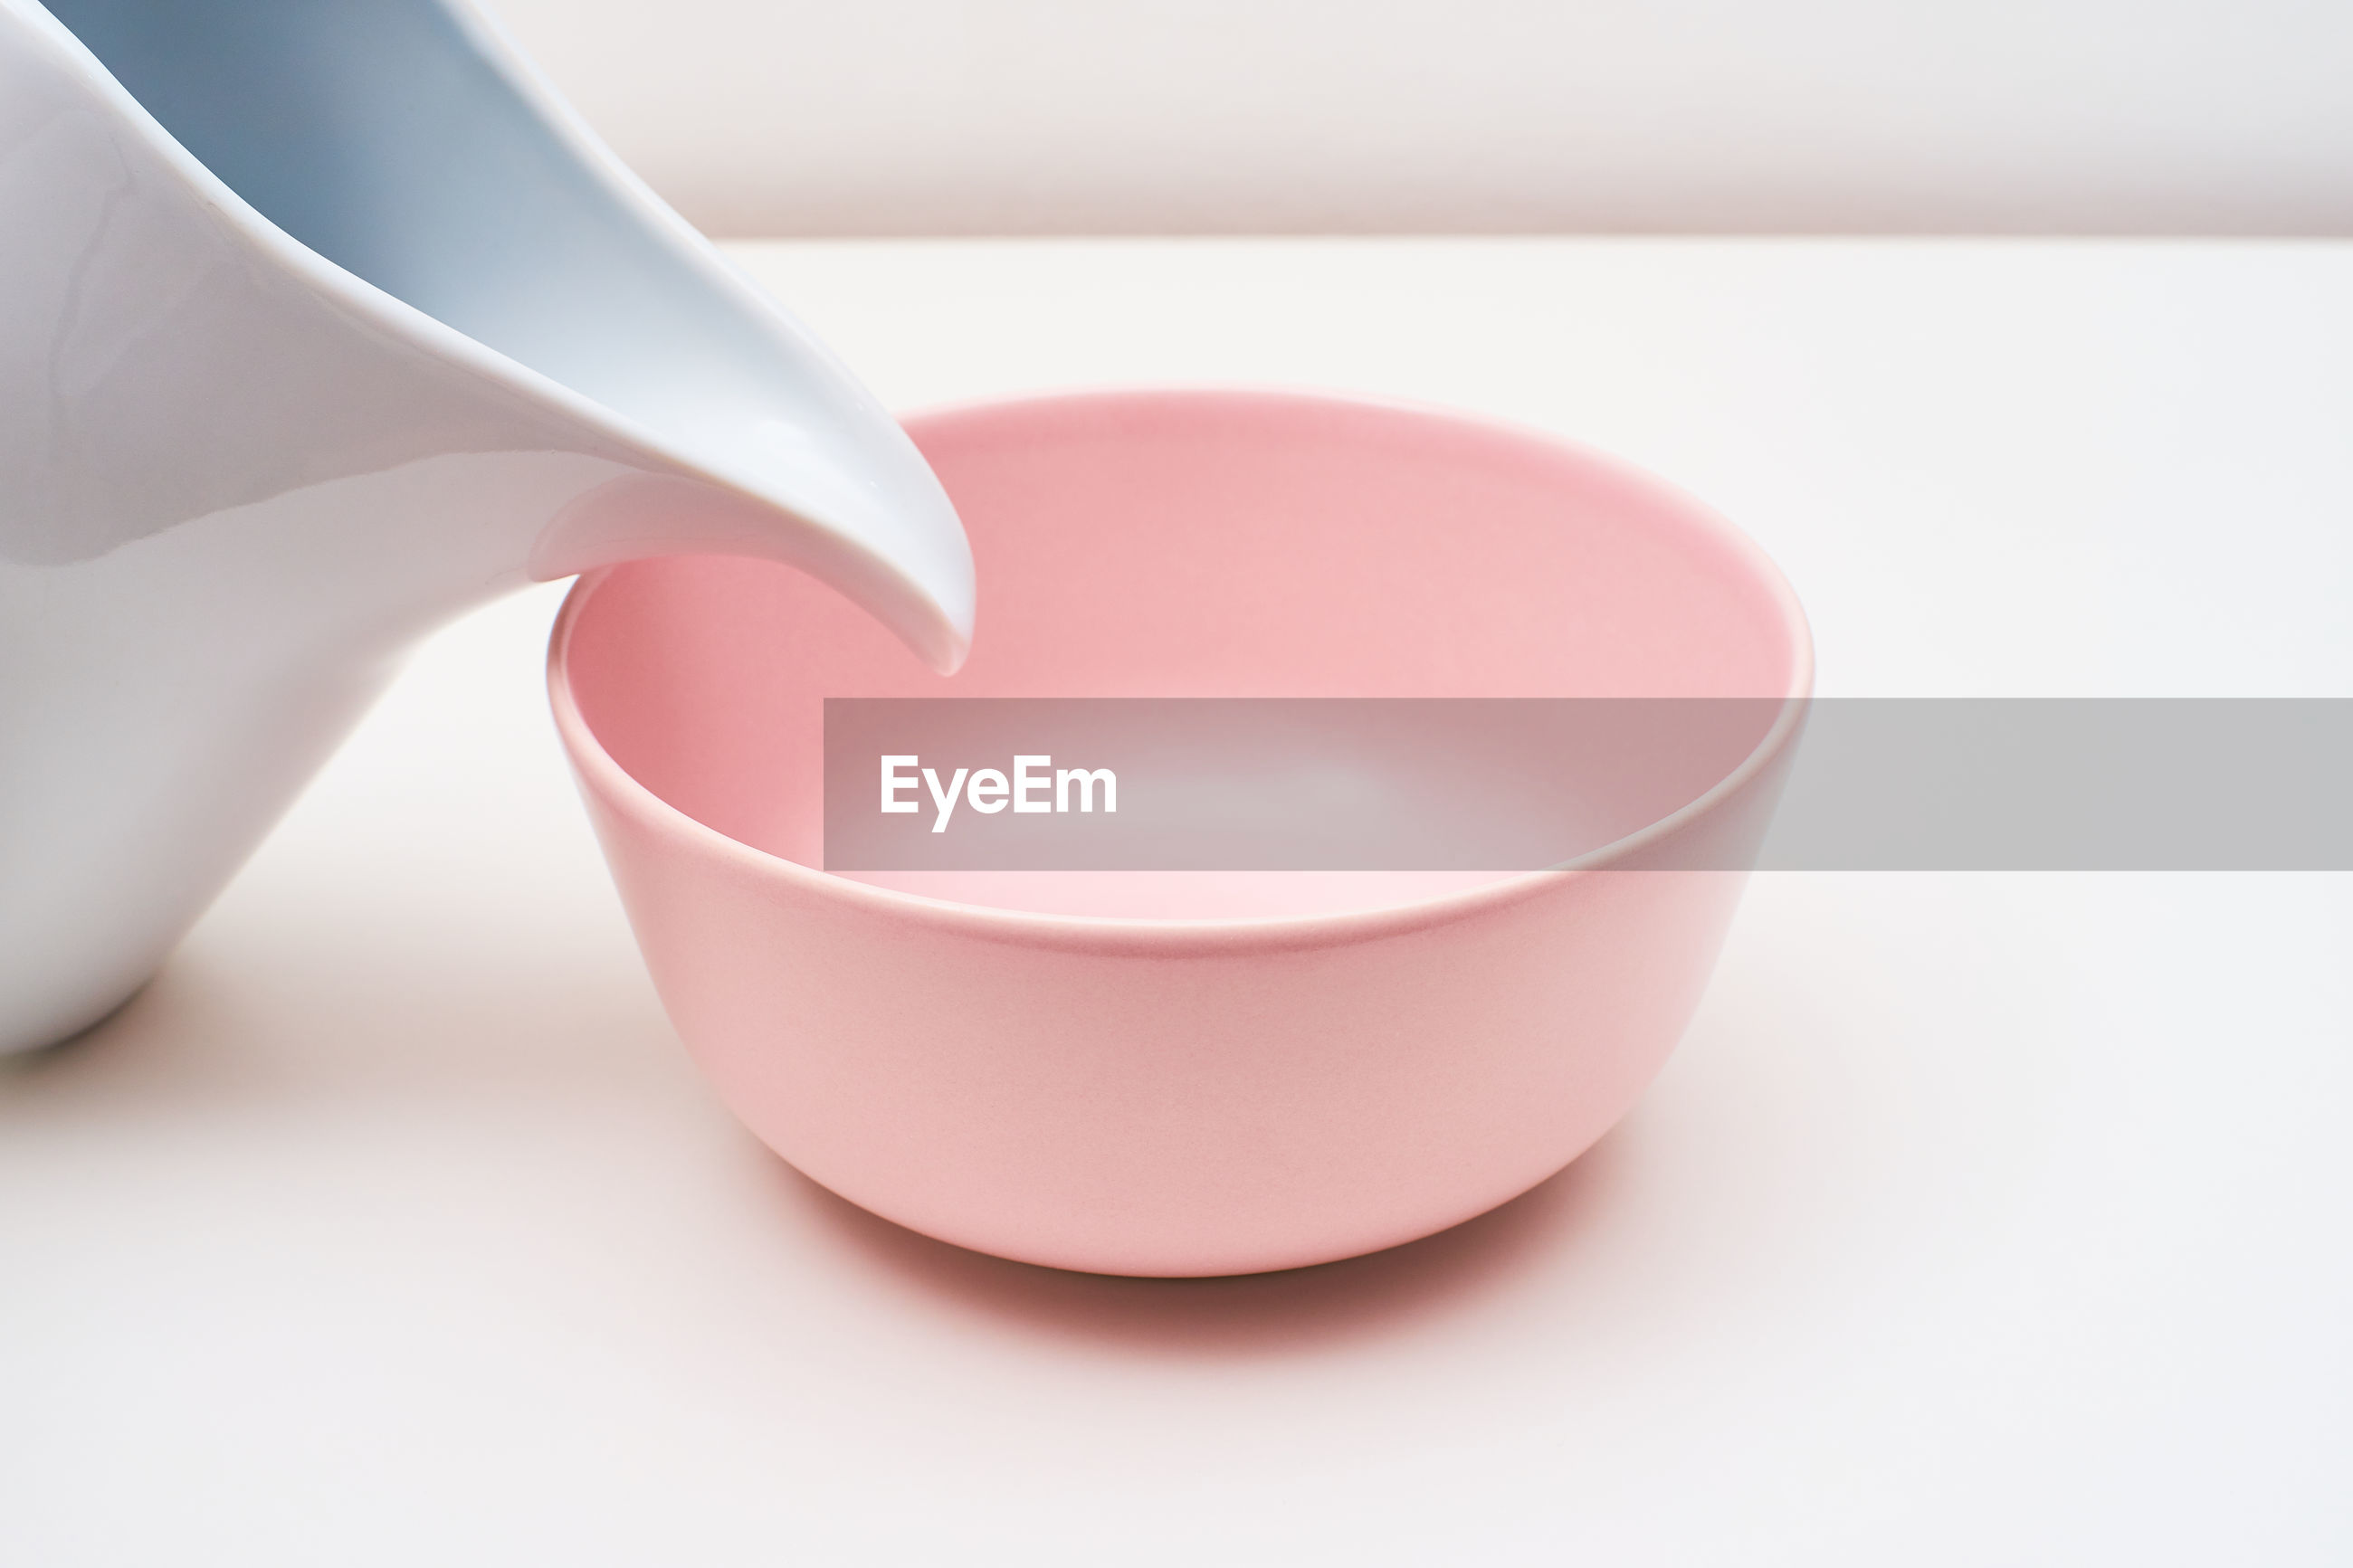 A pink bowl and a white carafe on a table